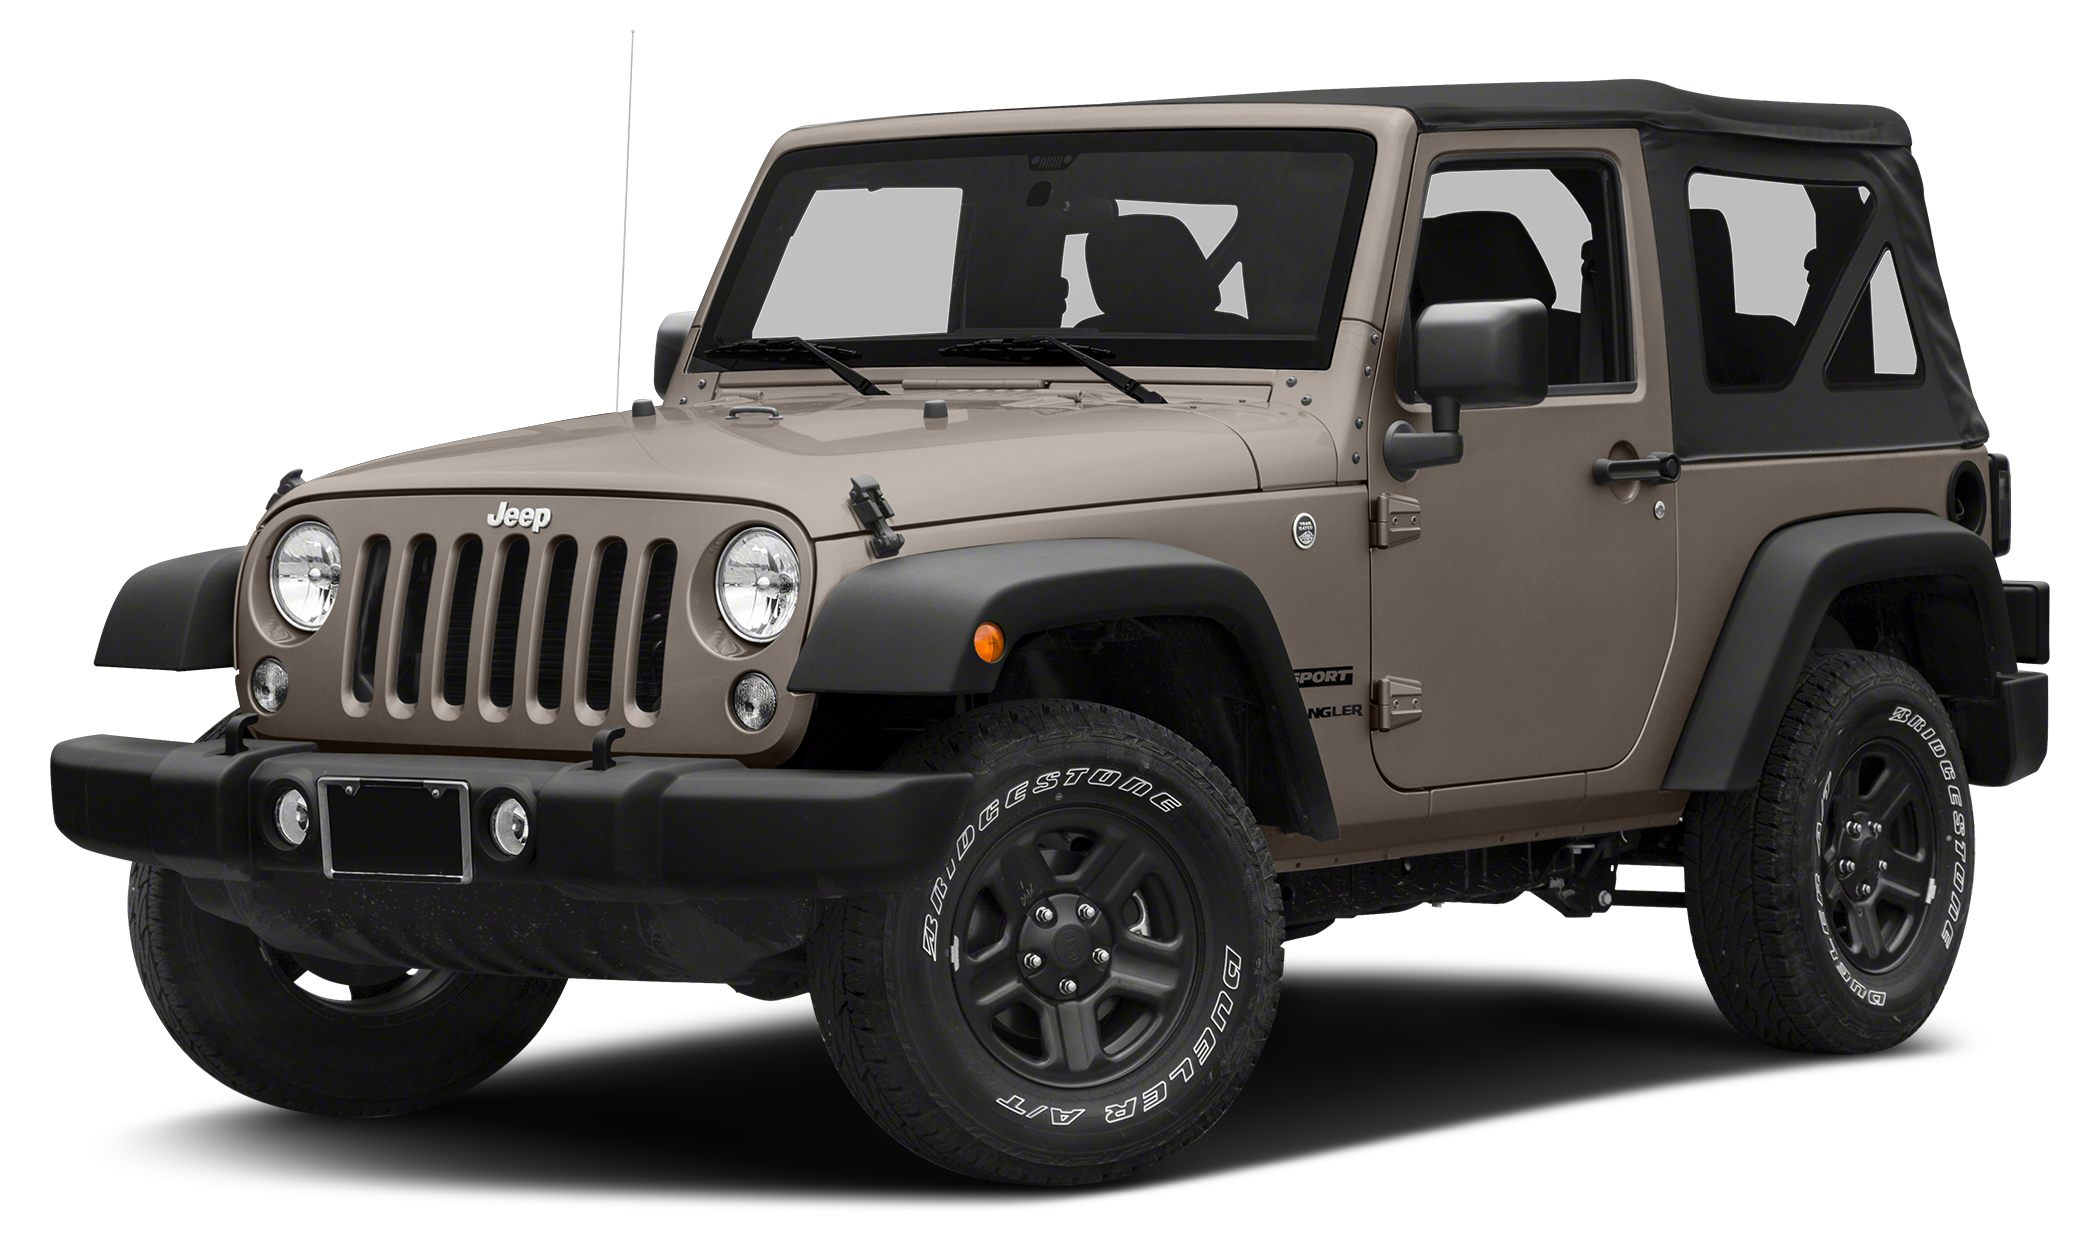 2016 Jeep Wrangler Sport Sport trim Mojave Sand Clear Coat exterior 4x4 QUICK ORDER PACKAGE 24S